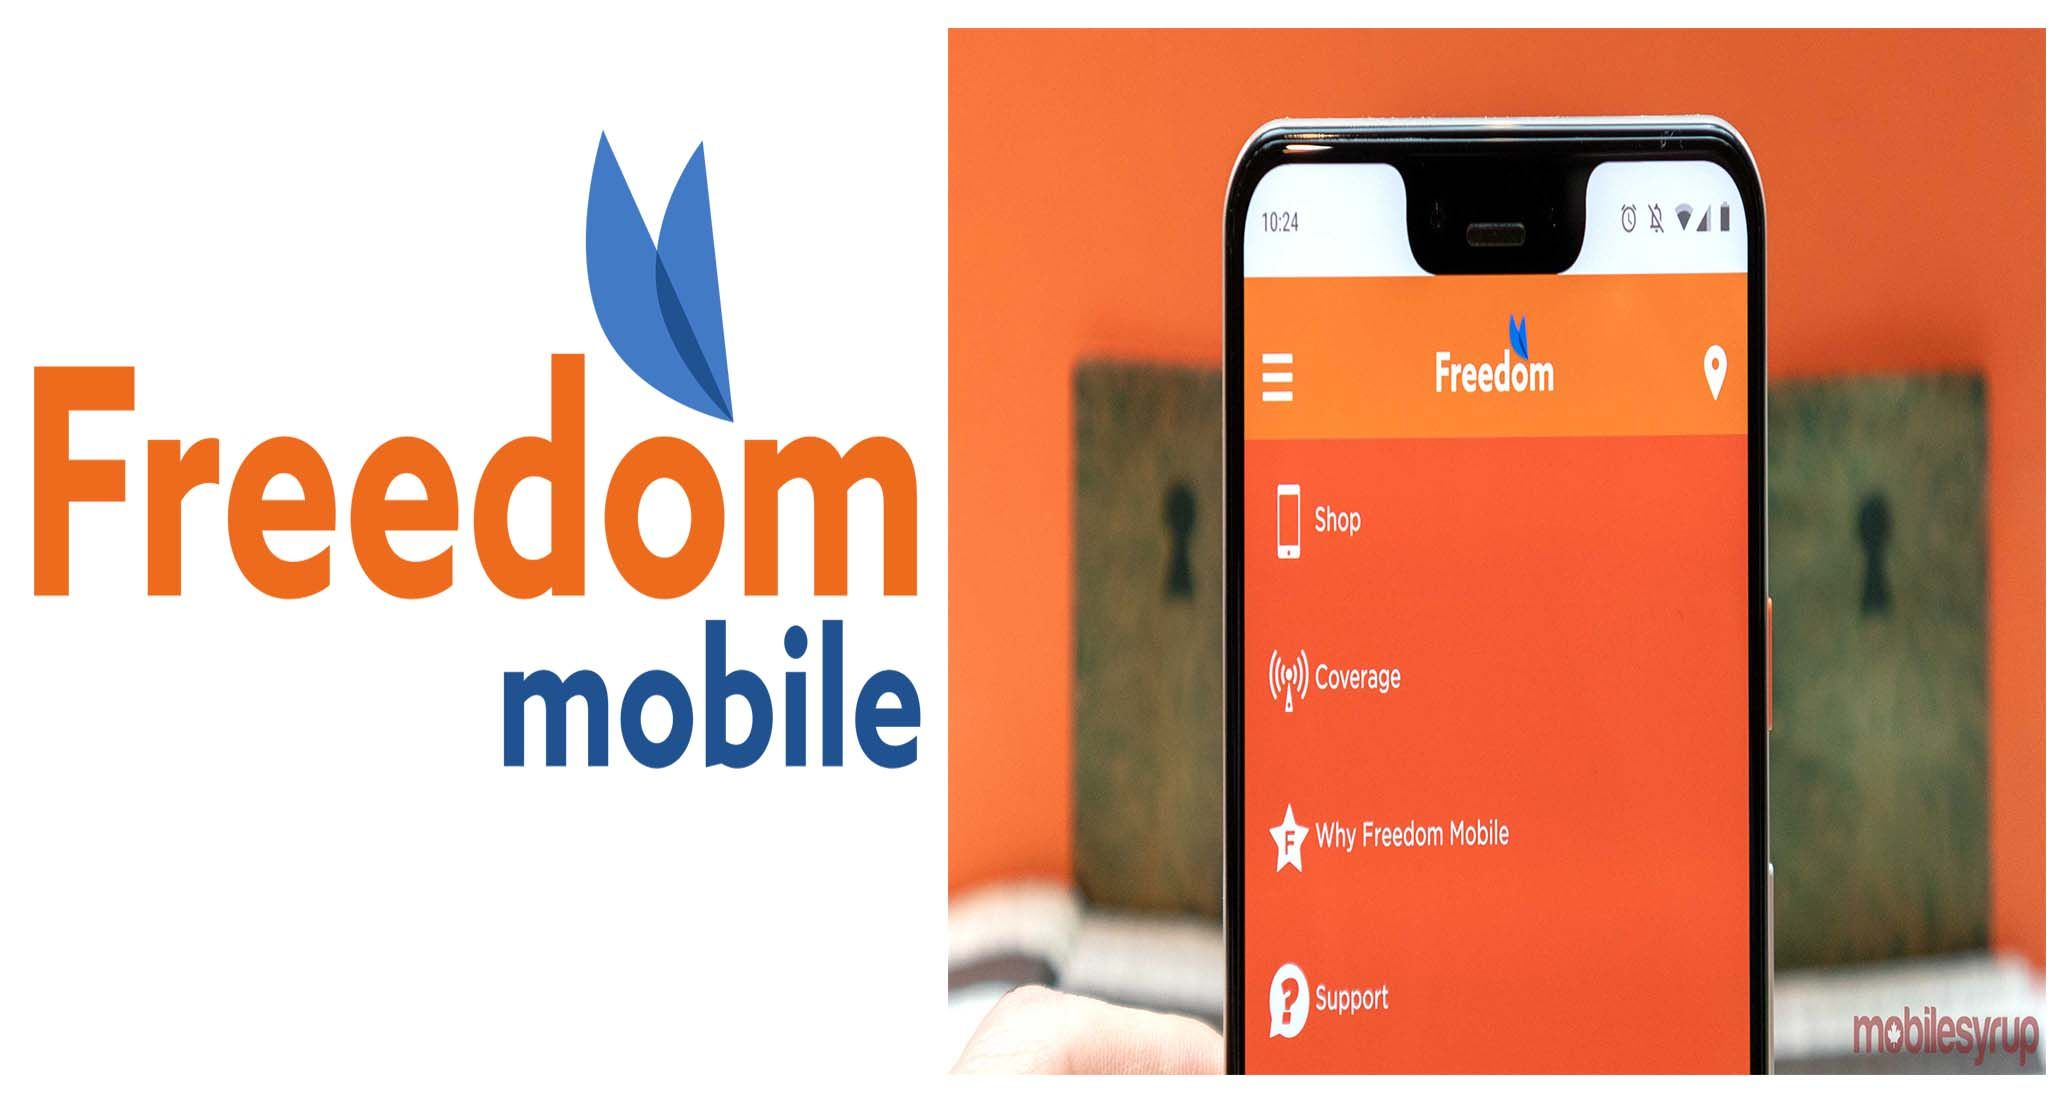 Freedom Mobile Freedom Mobile Cell Phone Plans in 2020